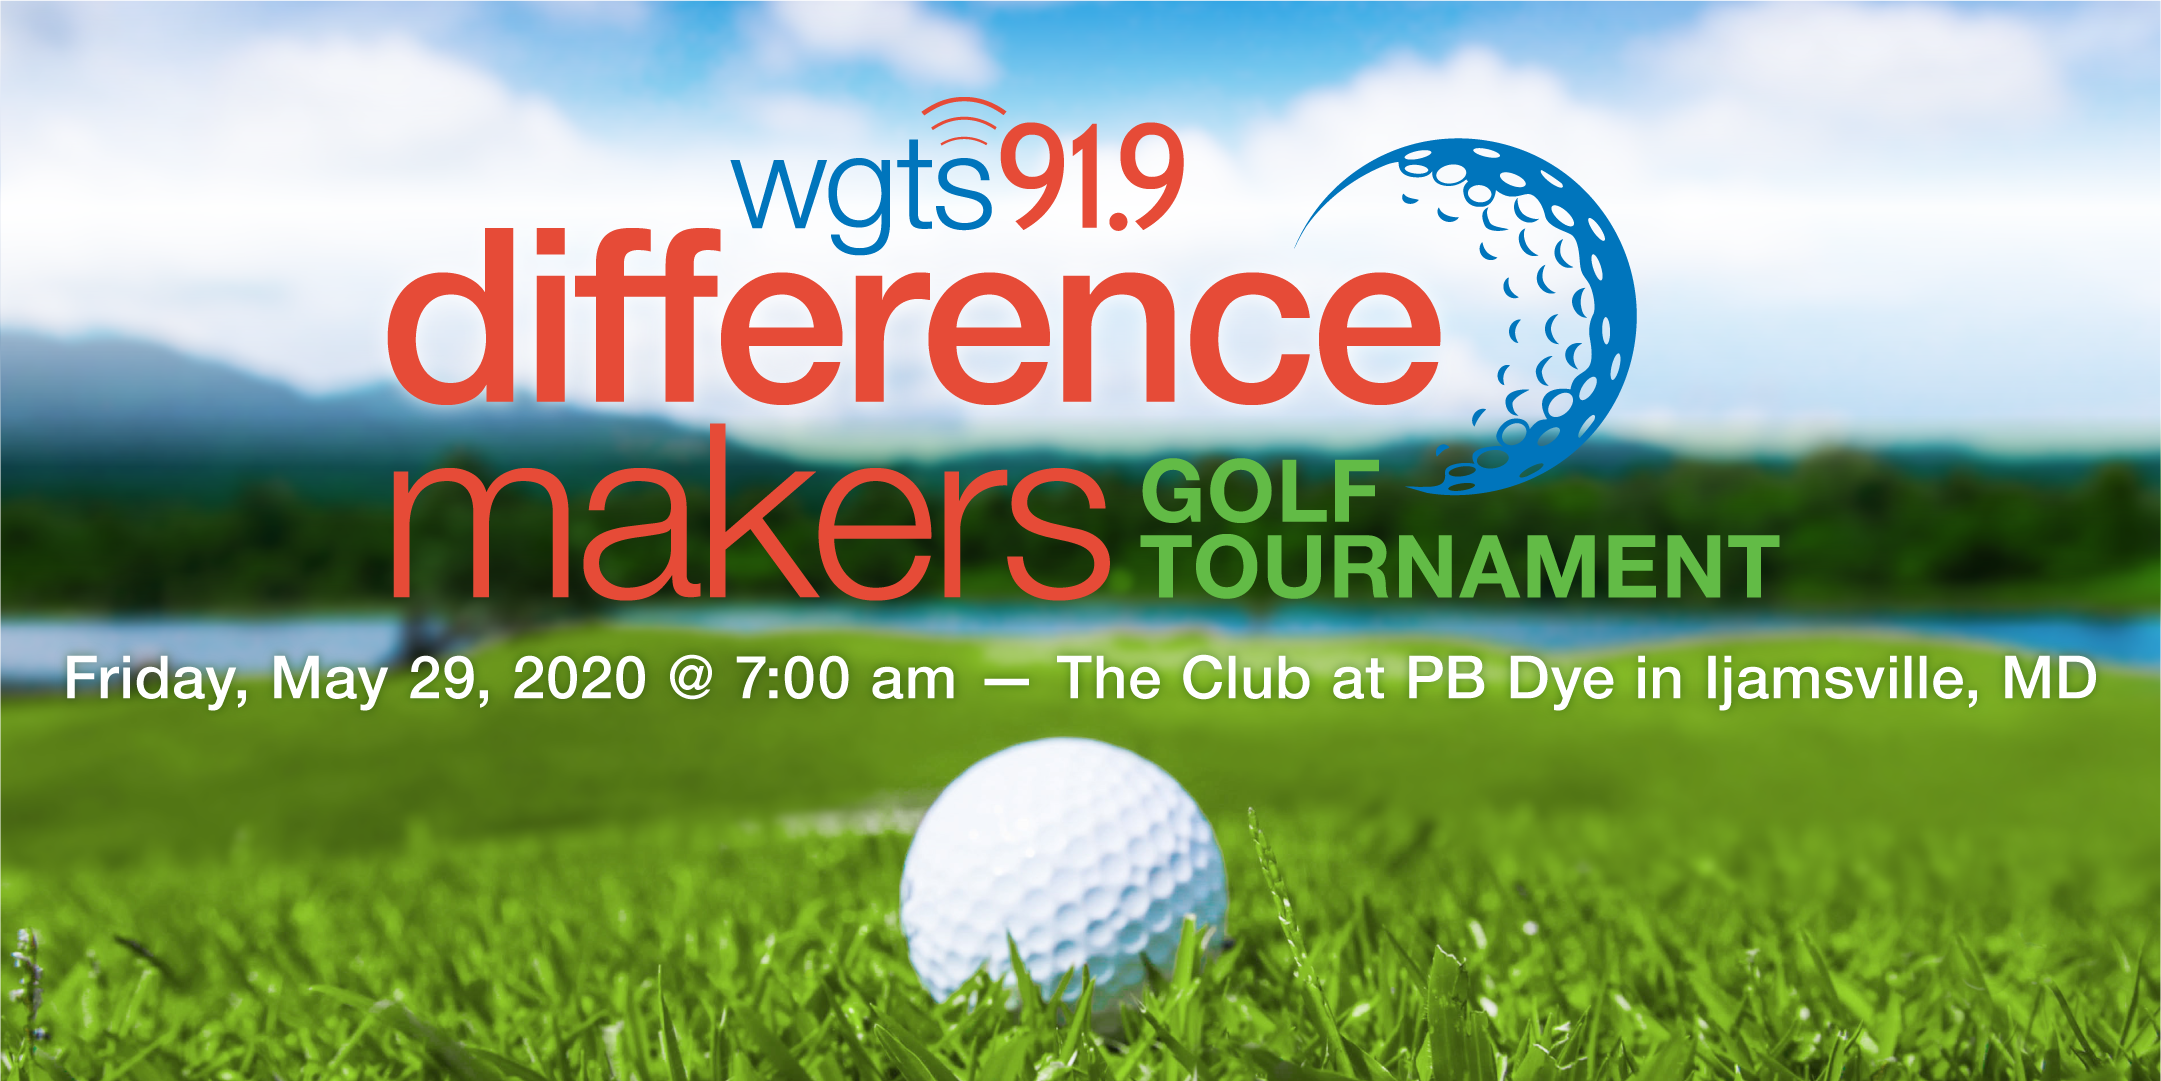 wgts golf tournament - 2020